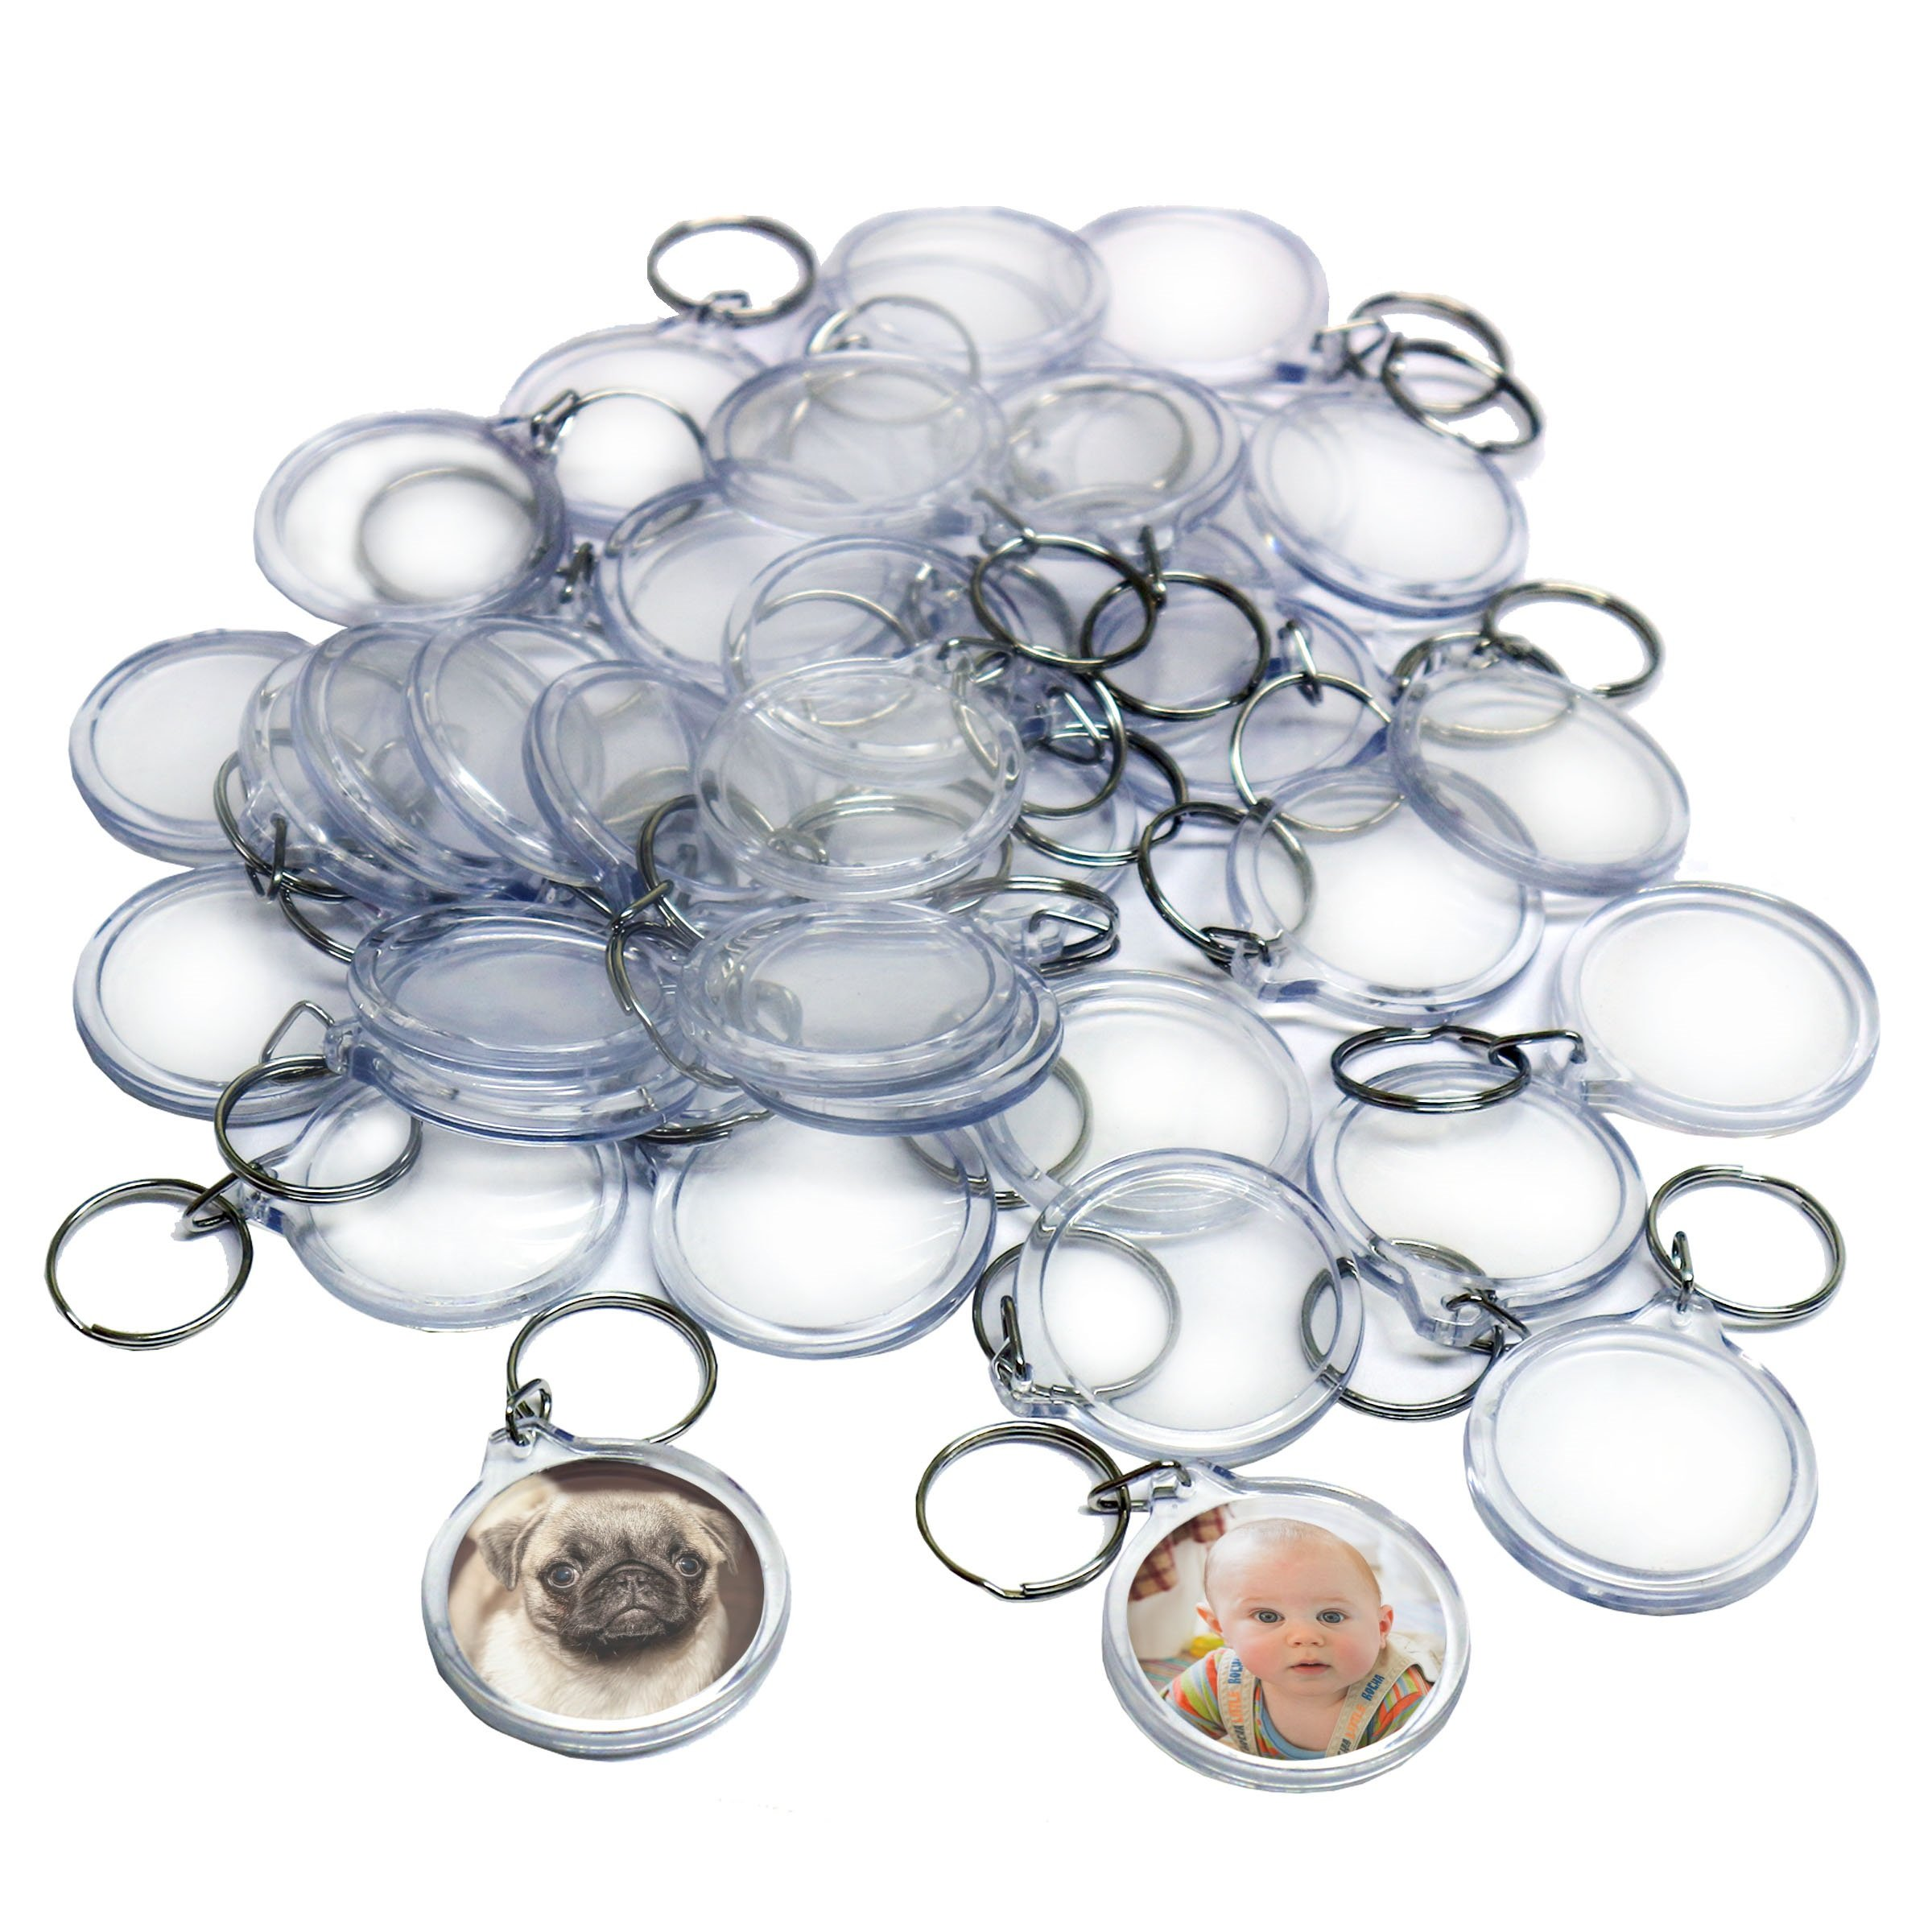 50 Clear Round Acrylic Photo Keychains by Kurtzy - 4 cm Diameter Translucent Keyring - Wallet Friendly Key Ring for Custom Personalised Insert Pictures - Plastic Keychain Suitable for Women and Men